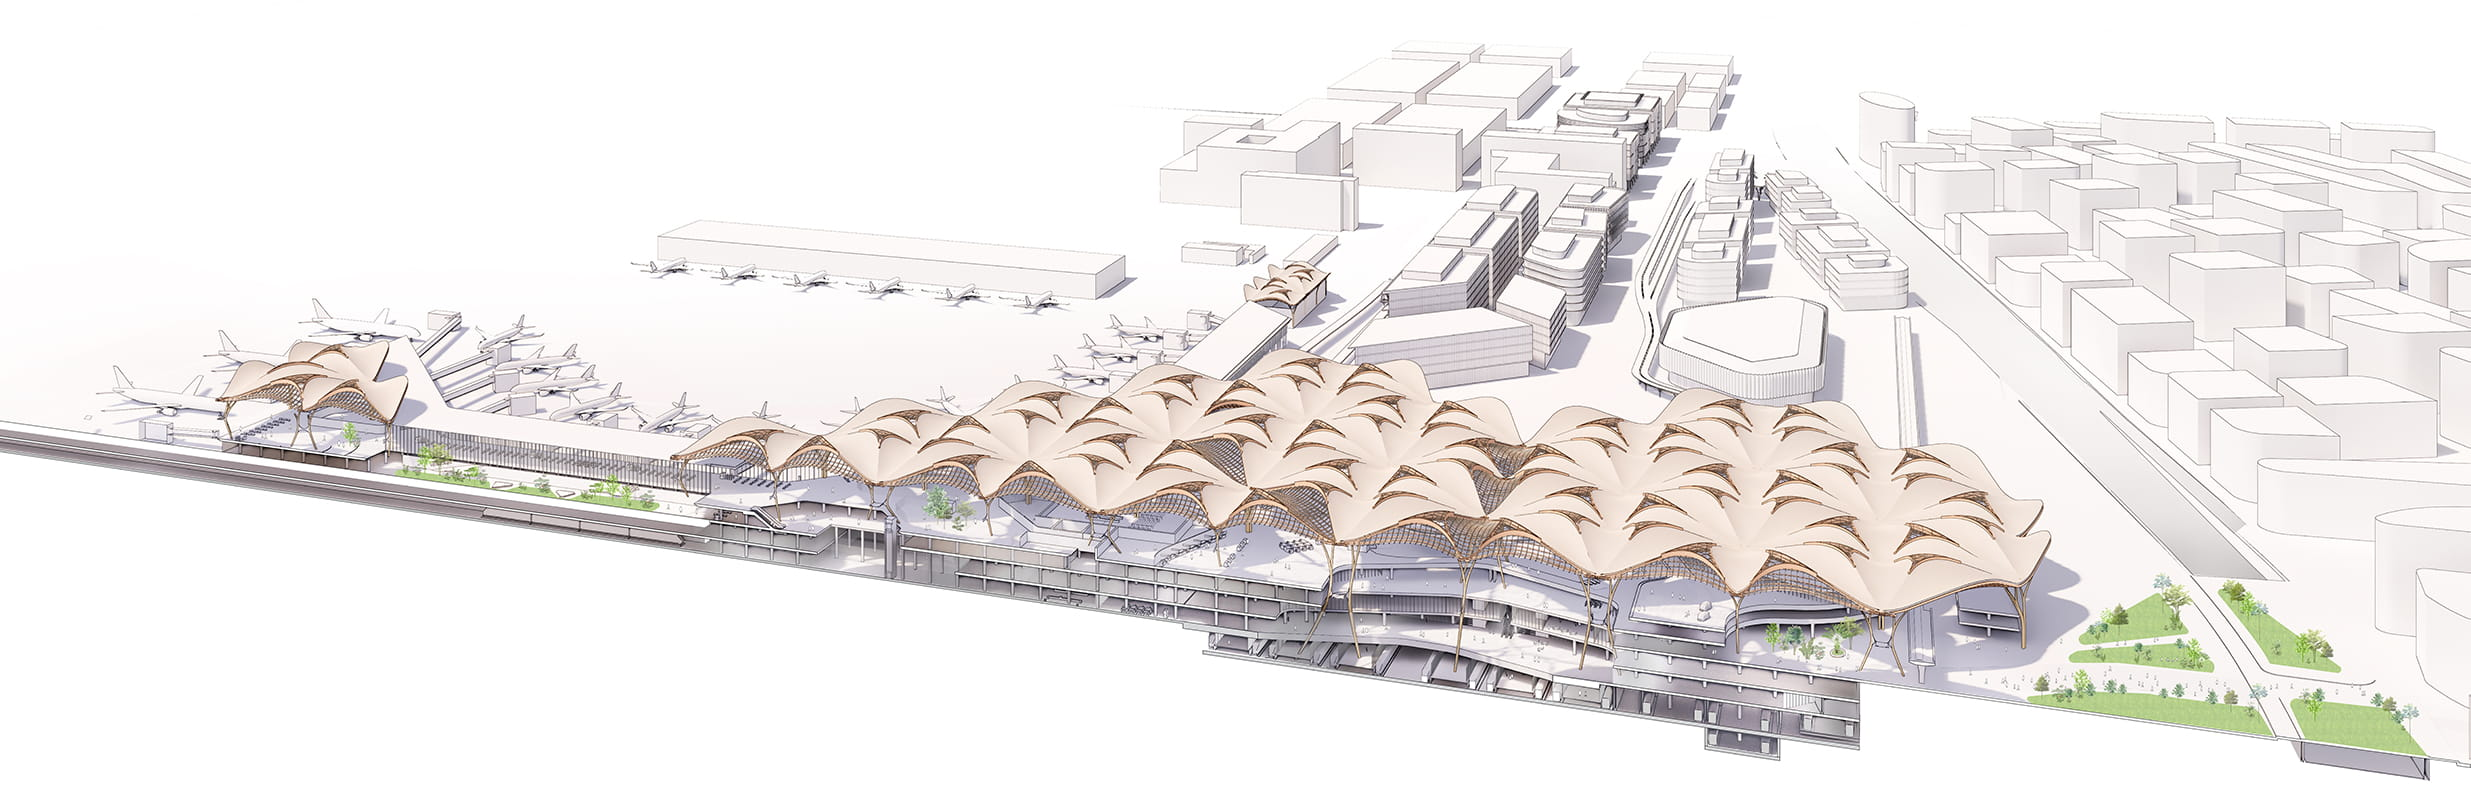 Axonometric Section of new Shenzhen Airport East Integrated Transport Hub